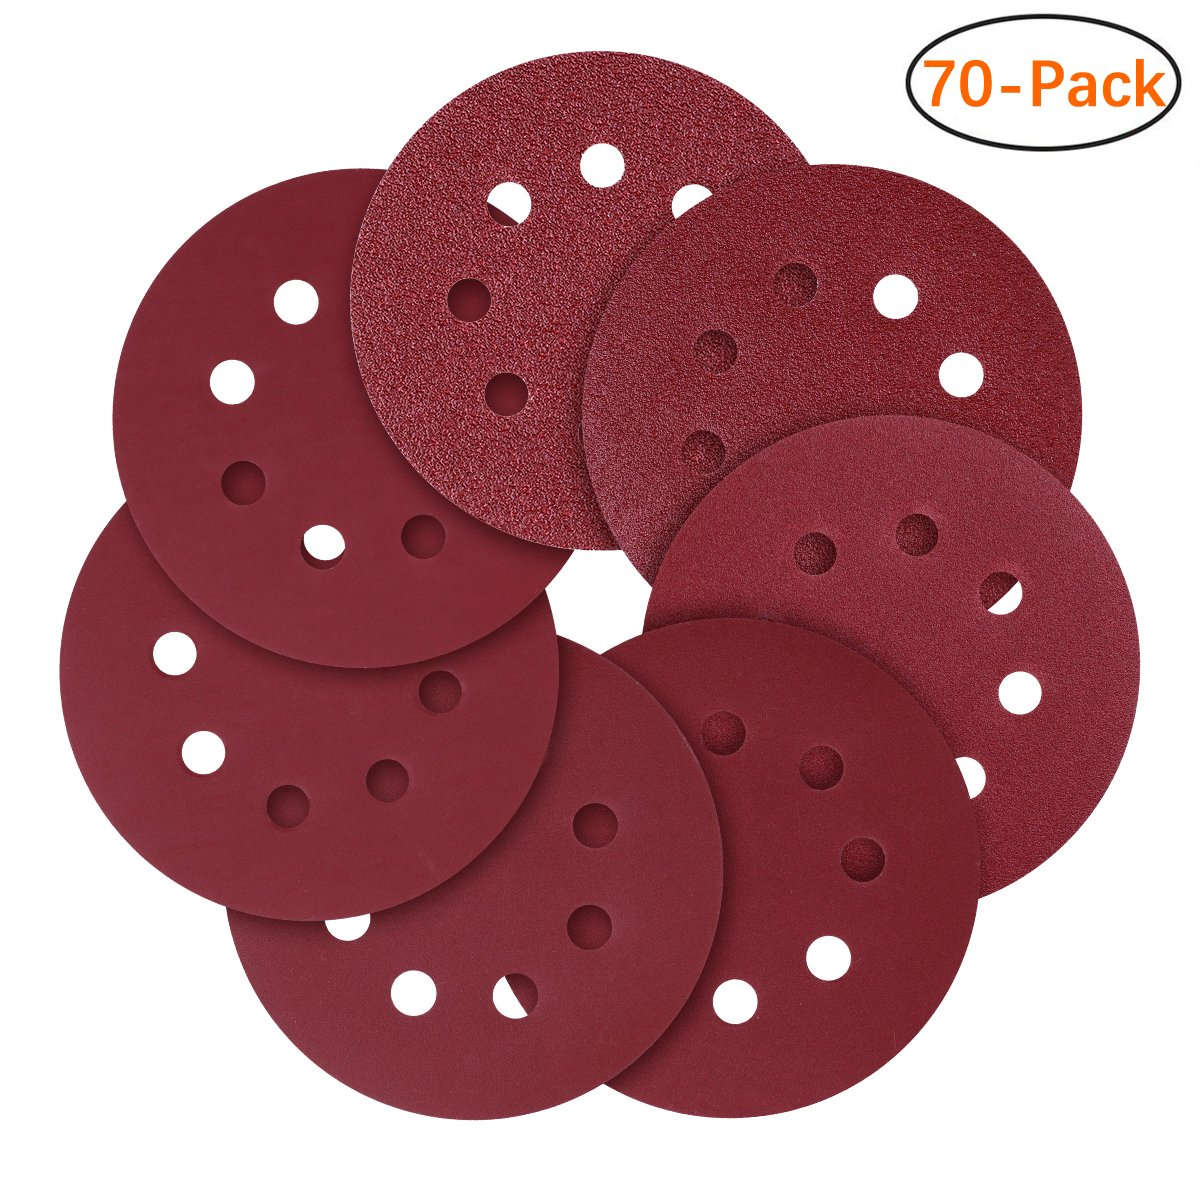 5-Inch 8-Hole Hook and Loop Sanding Discs, 40/80/120/240/320/600/800 Assorted Grits Sandpaper - Pack of 70